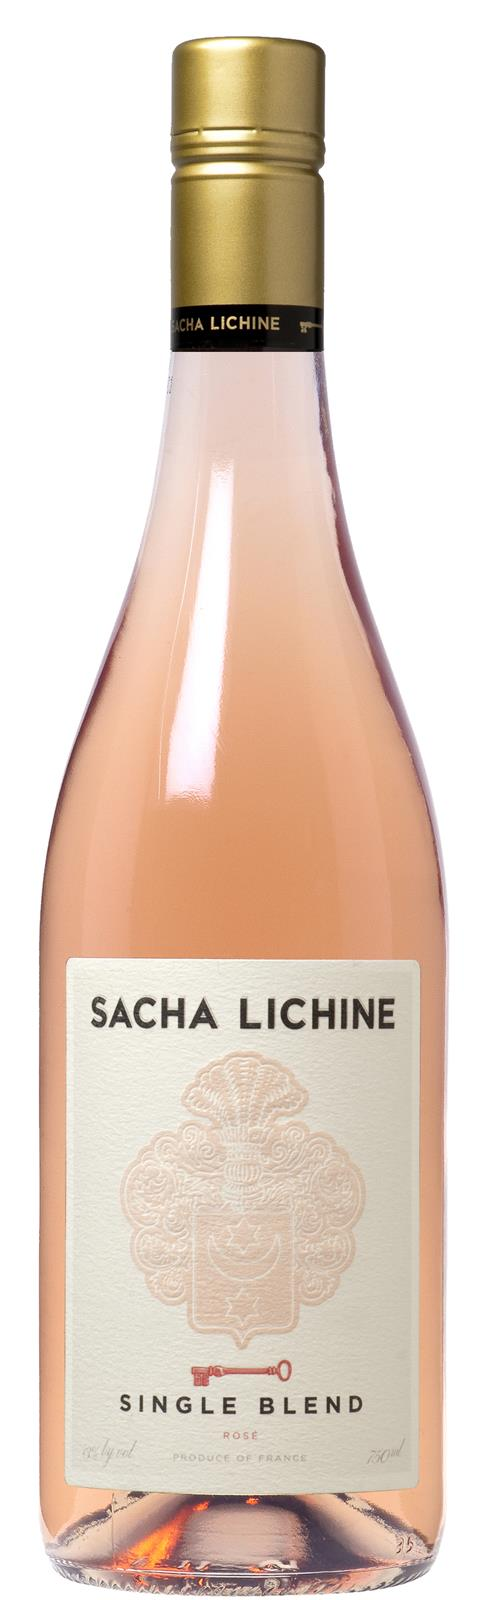 Sacha Lichine Single Blend Rosé 2018 (France)